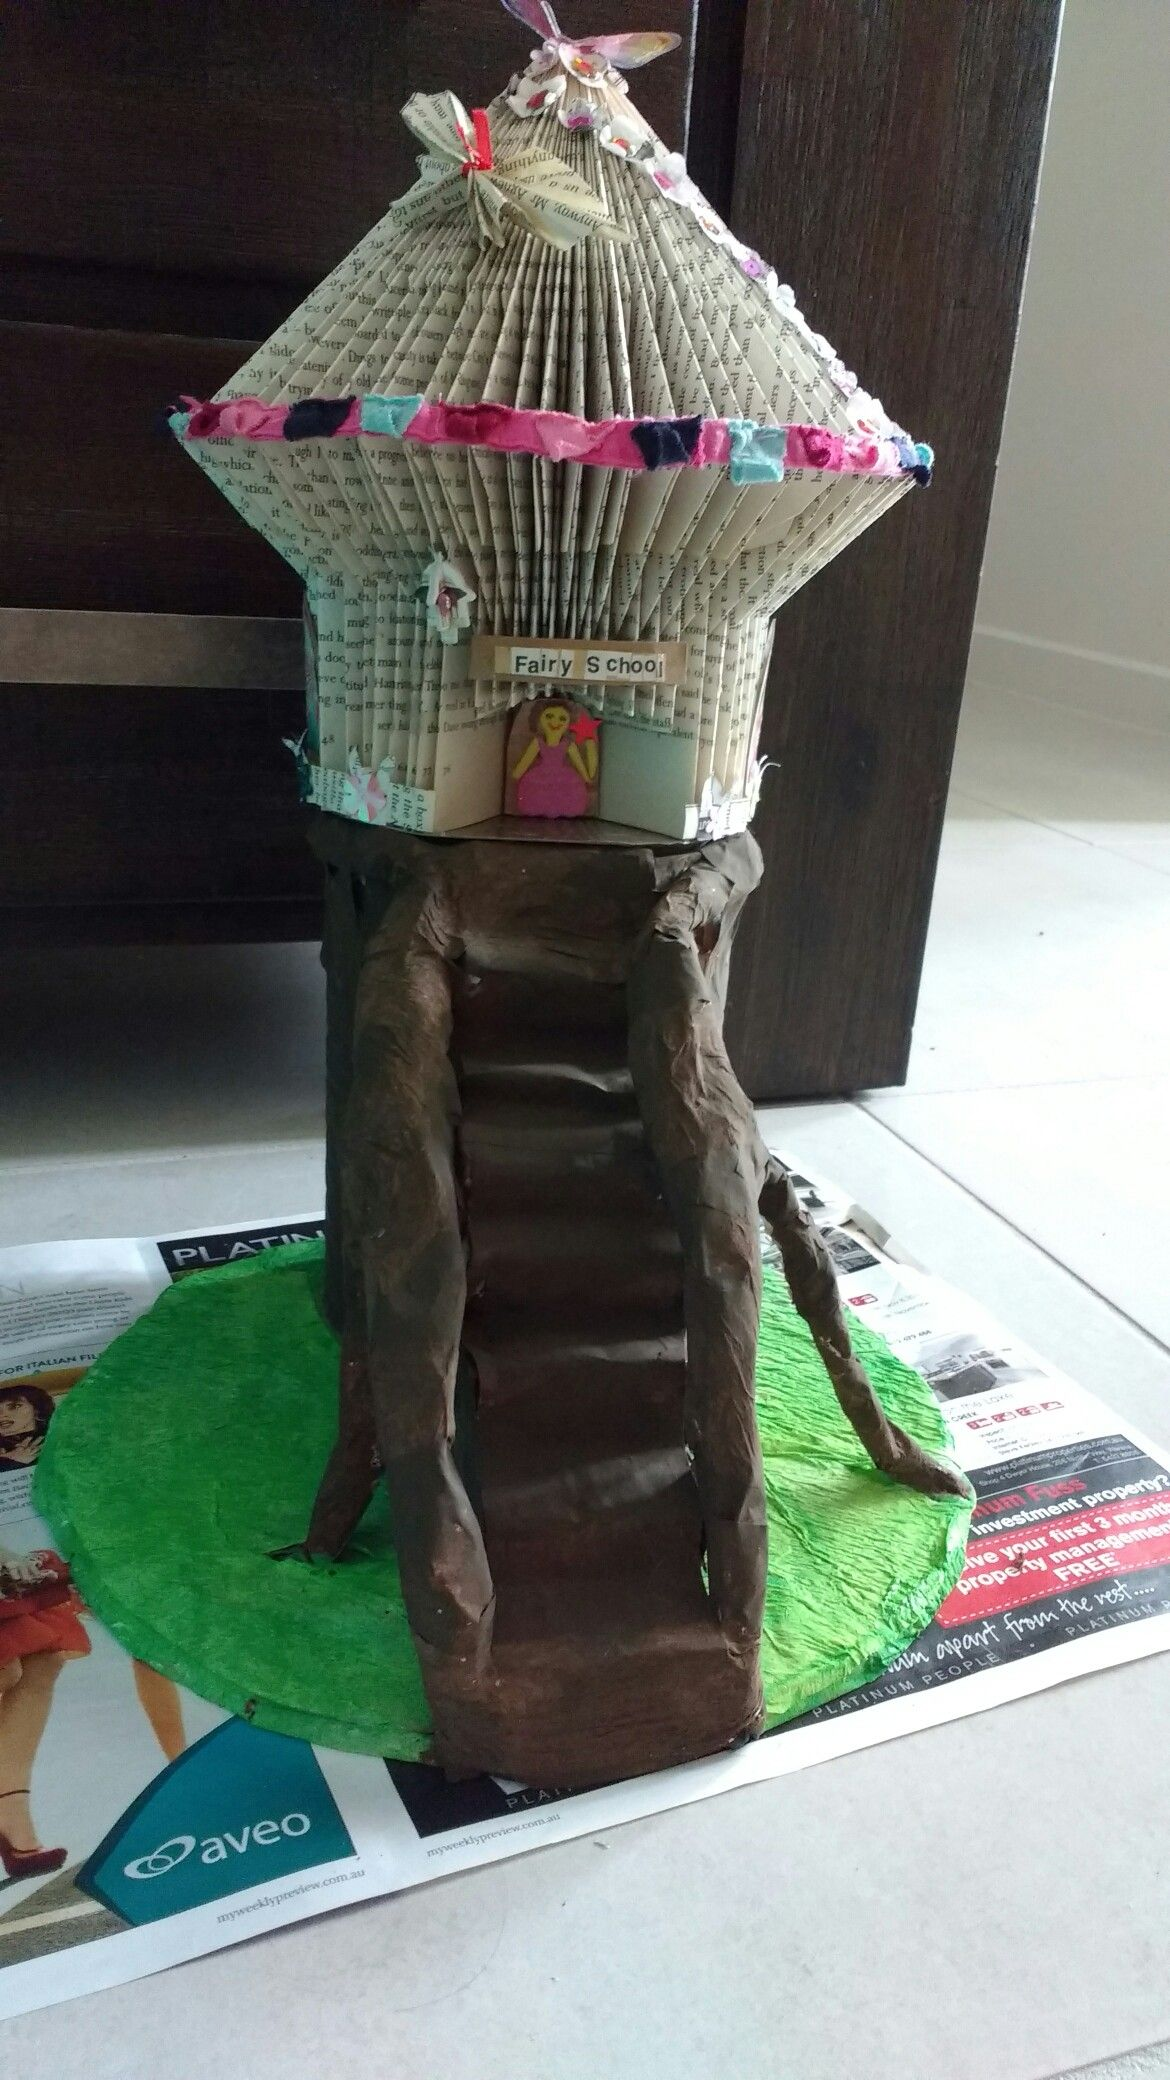 book art fairy house becomes a fairy school in fairy land the book rh pinterest com Make Your Own Fairy House Book Fairy House Building